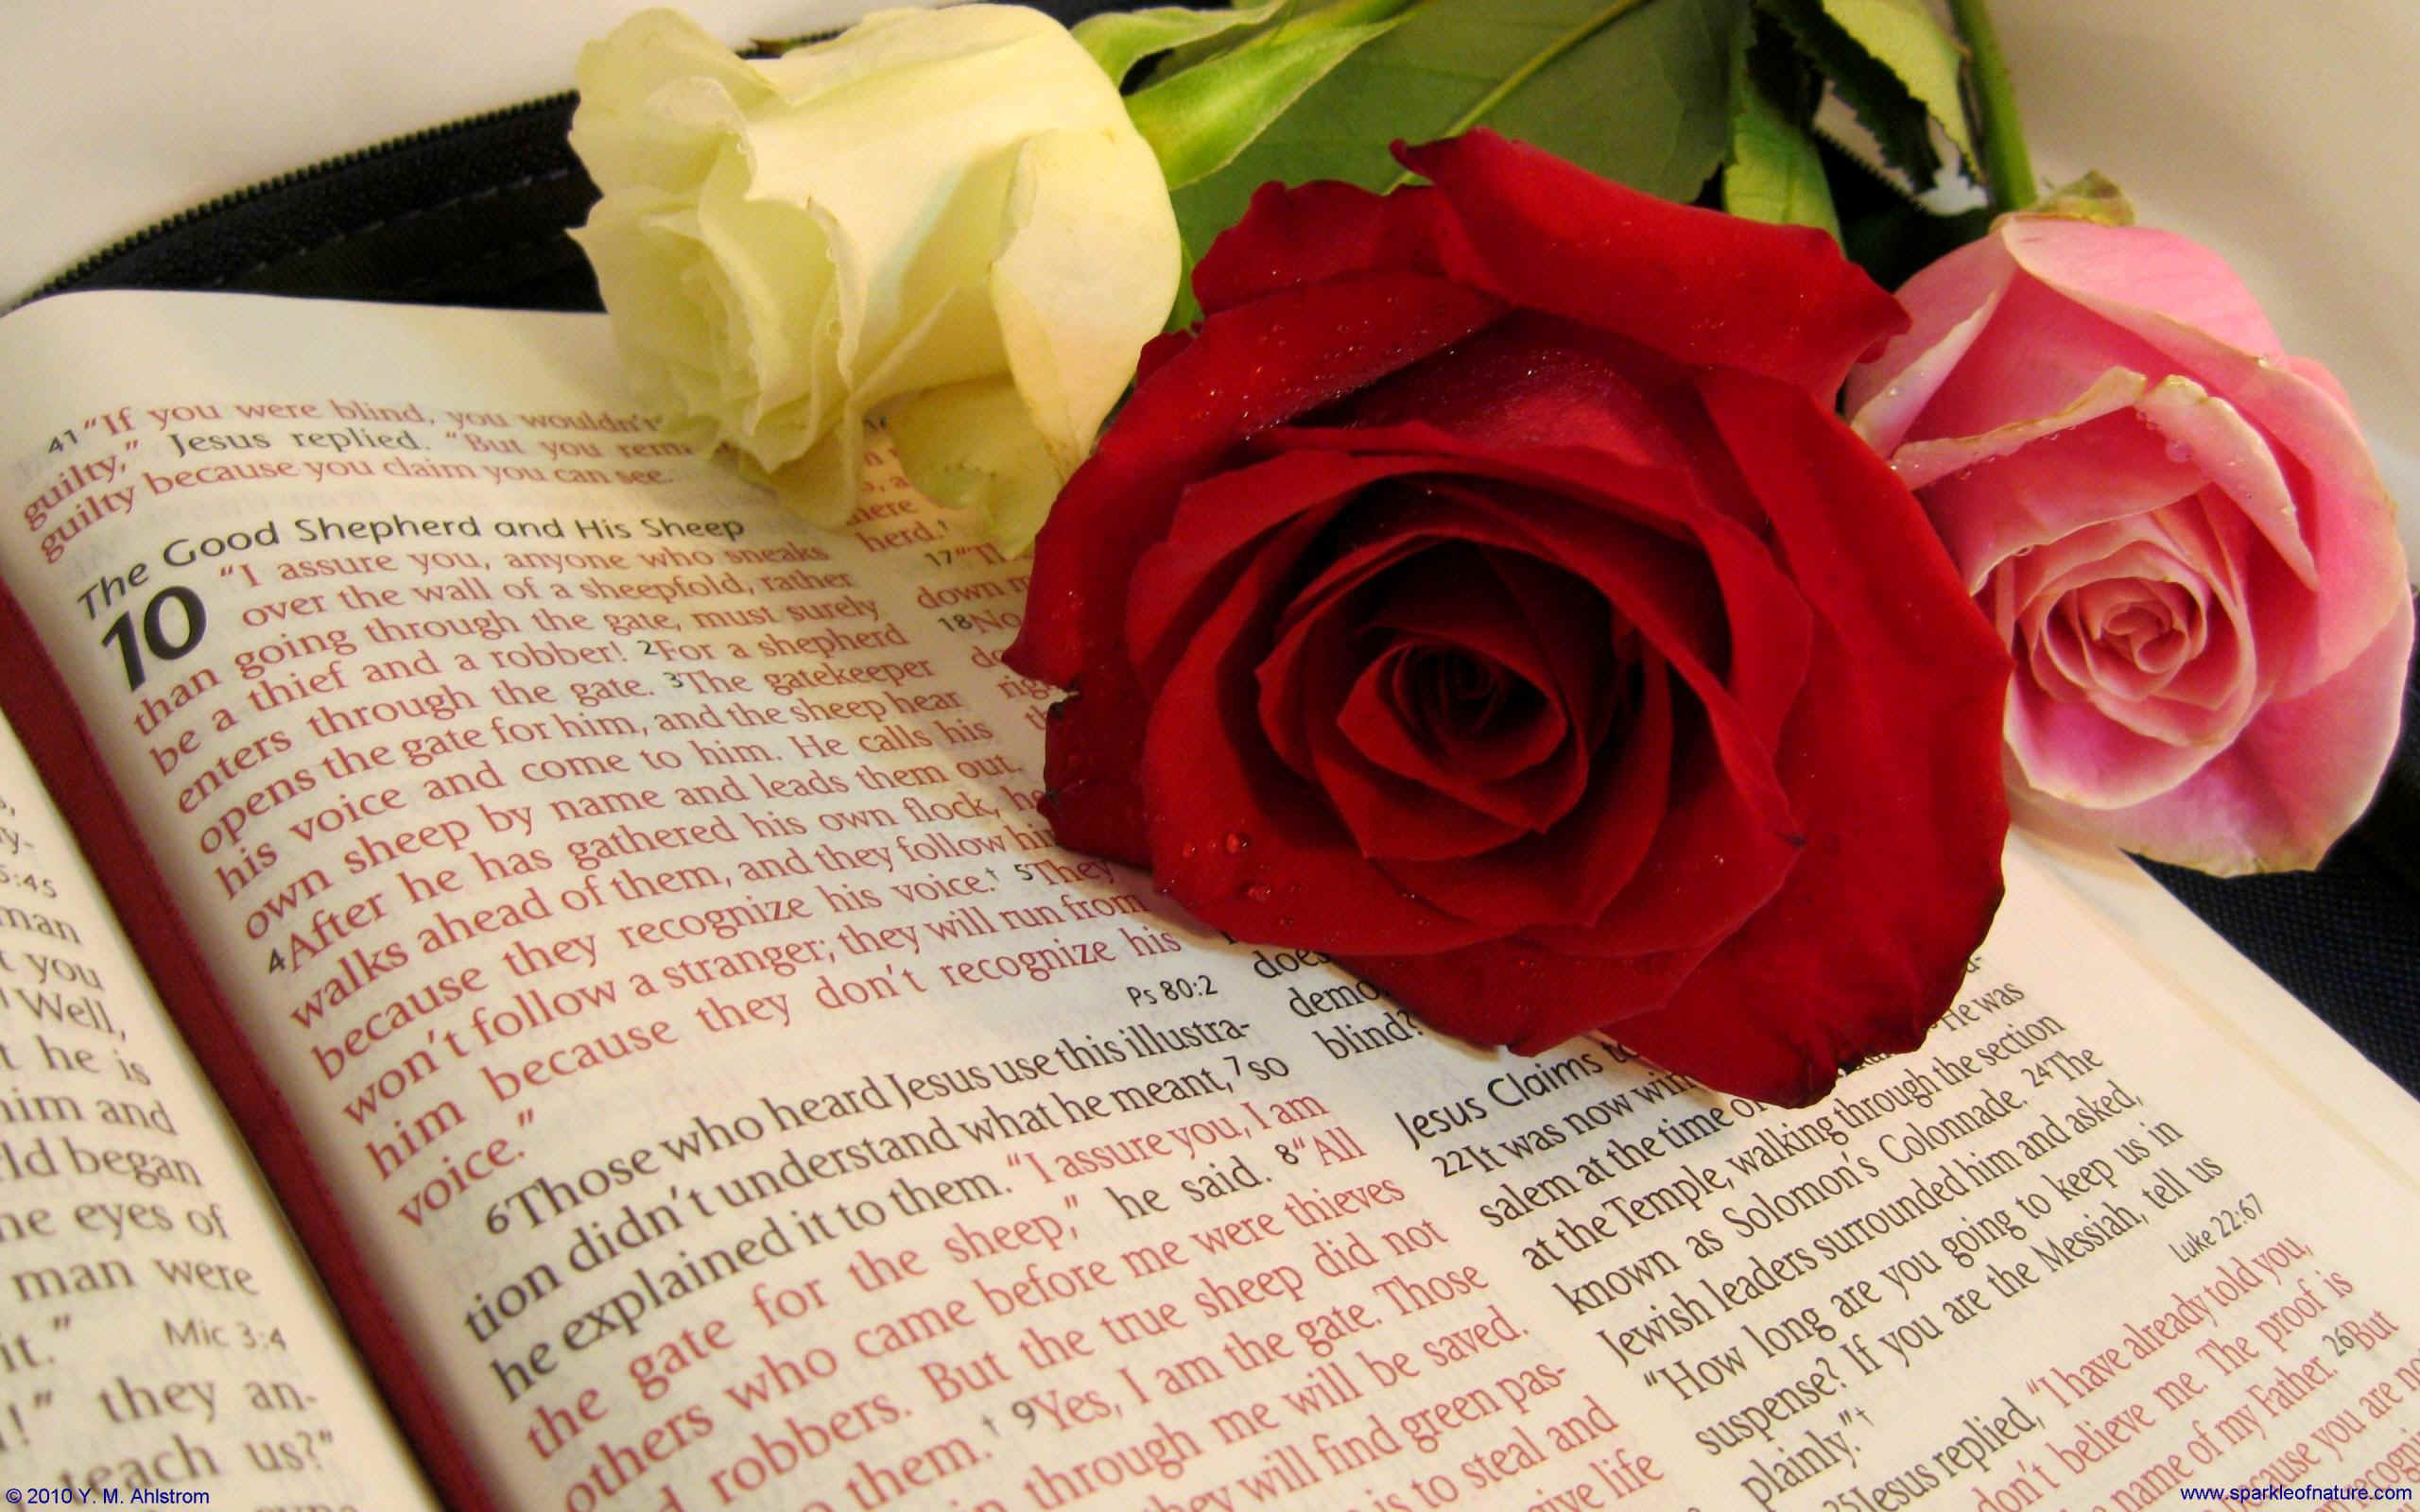 14360 bible with roses 2 w 2560x1600.jpg (467534 bytes)